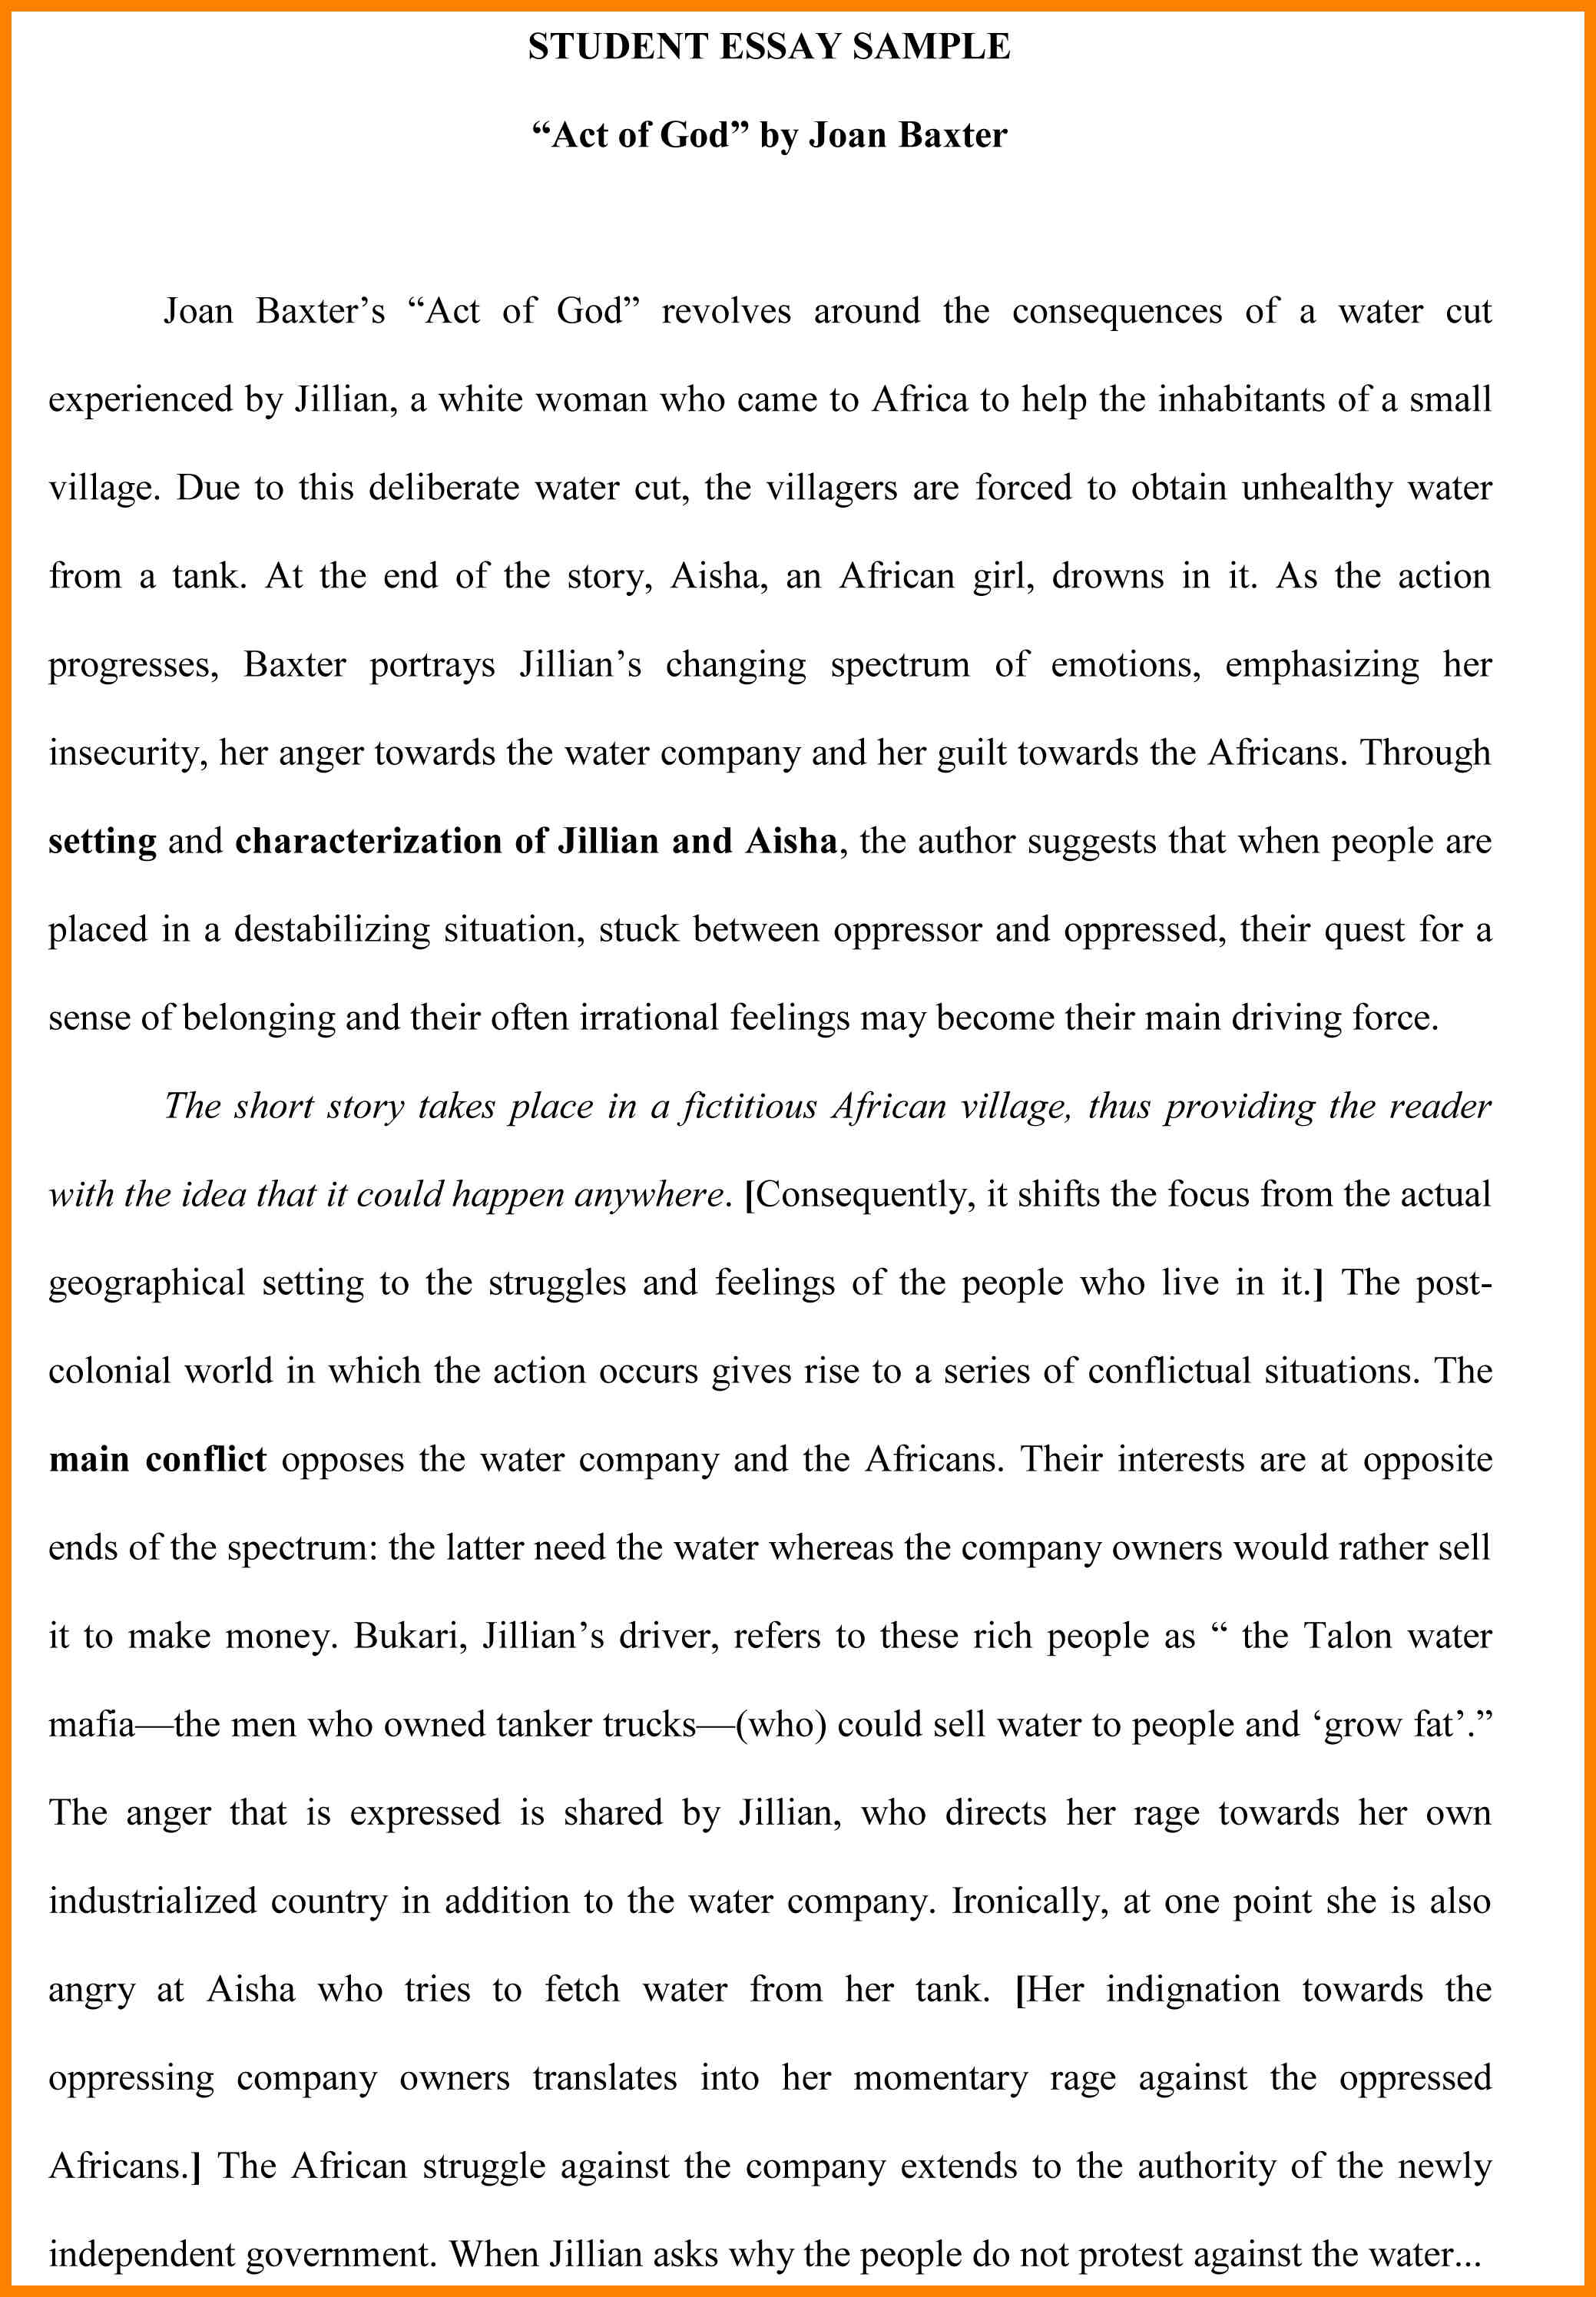 008 Examples Of Process Essays Pdf How To Write Good Student Better Download Descriptive Great Law Steve Foster Lauren Starkey Essay Example Stirring Montaigne Deutsch English Penguin Full